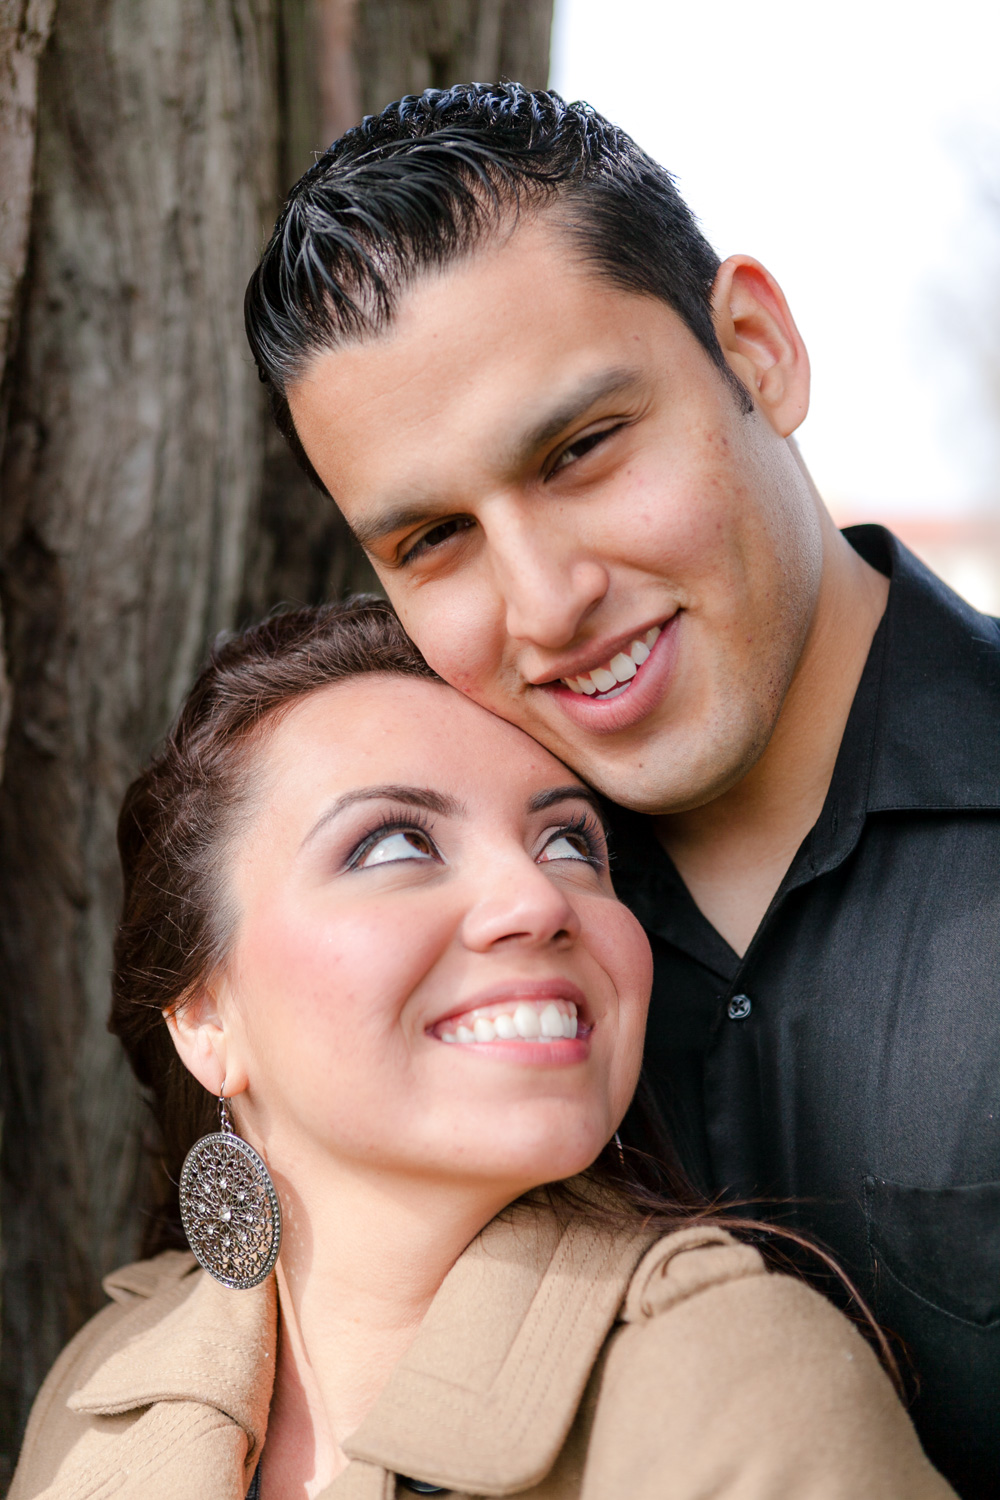 Jose-Stephanie-Engagement-0001.jpg